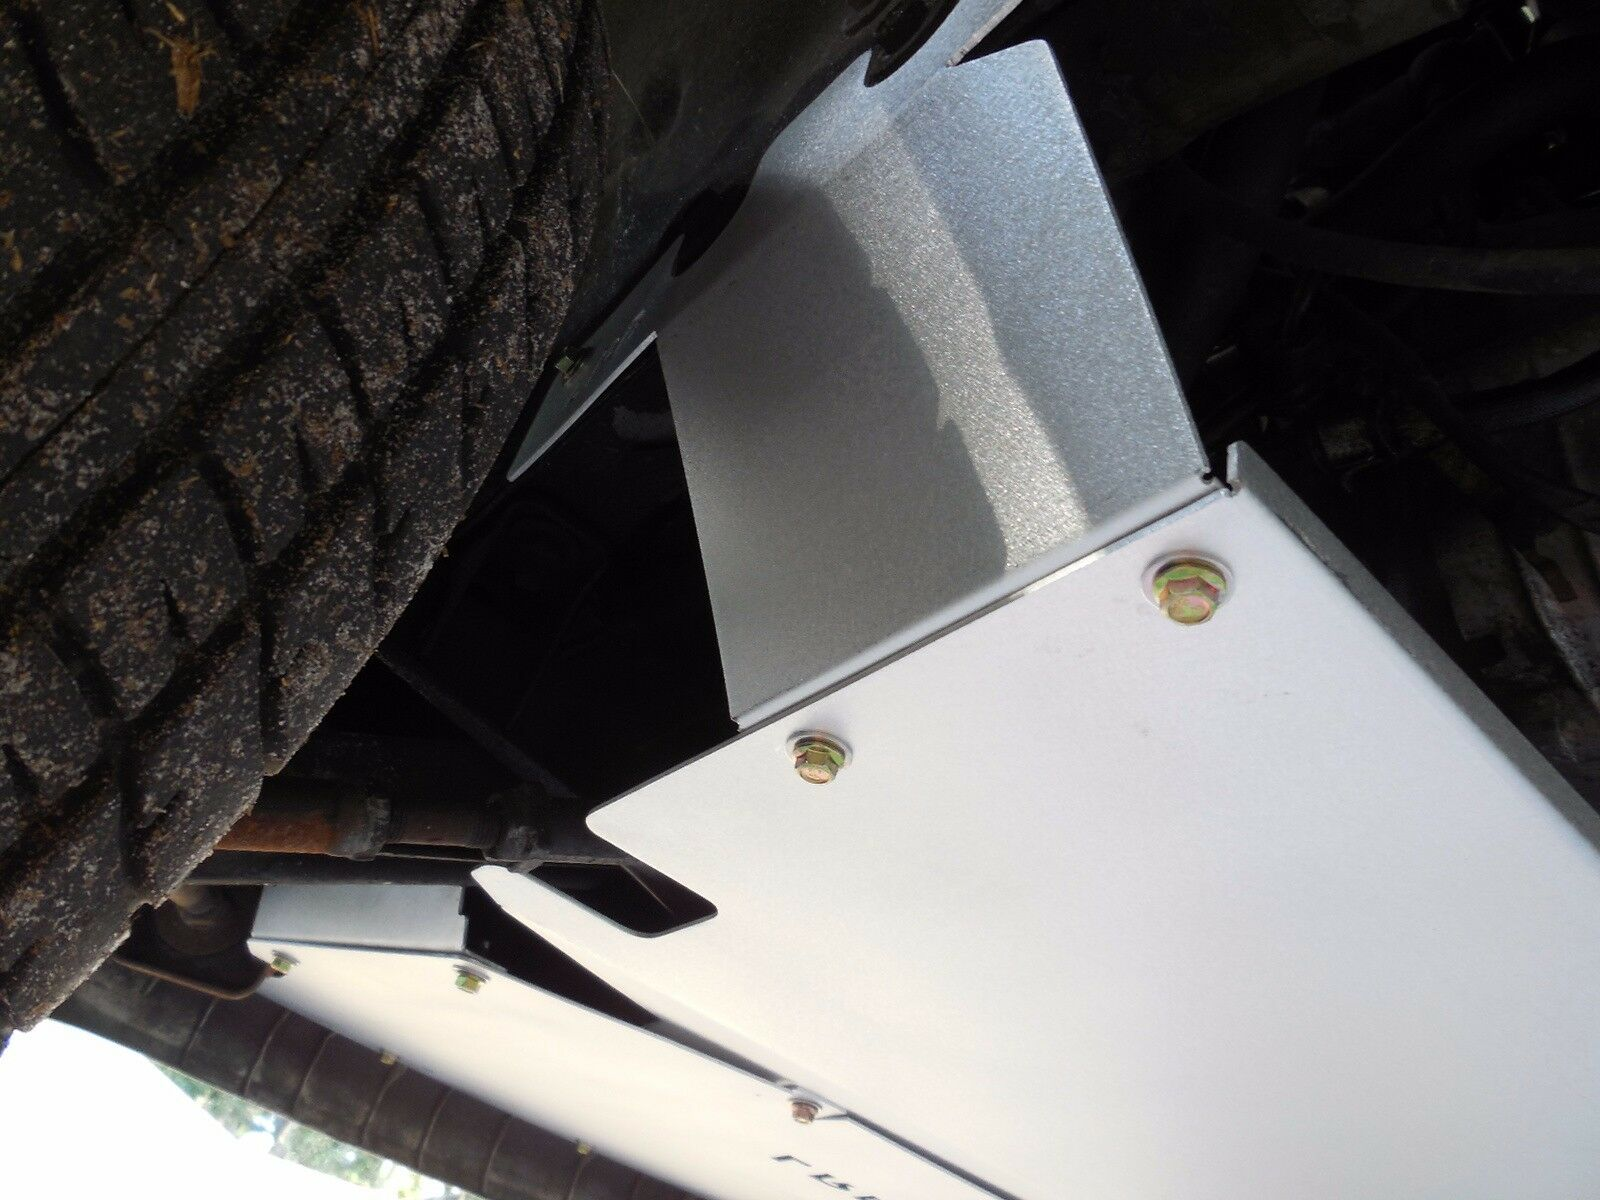 LRB Speed RX7 Sport Aero Panel 79-85 SA22C FB3S First Gen undertray diffuser